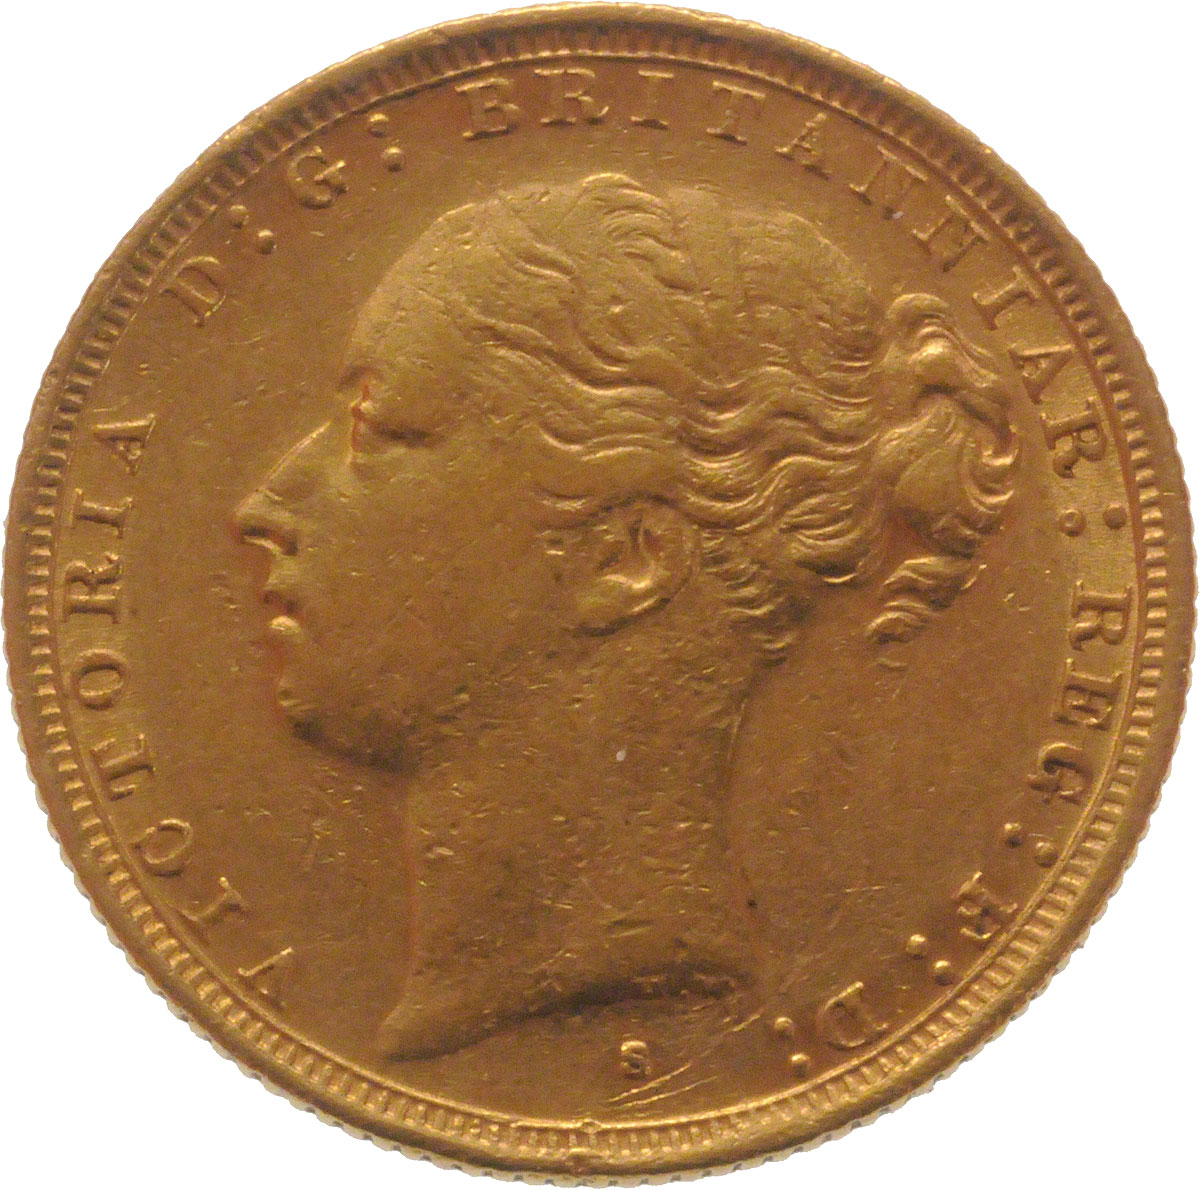 Obverse Face of a 1887-Gold-Sovereign-Victoria-Young-Head-St-George-Sydney-Mint